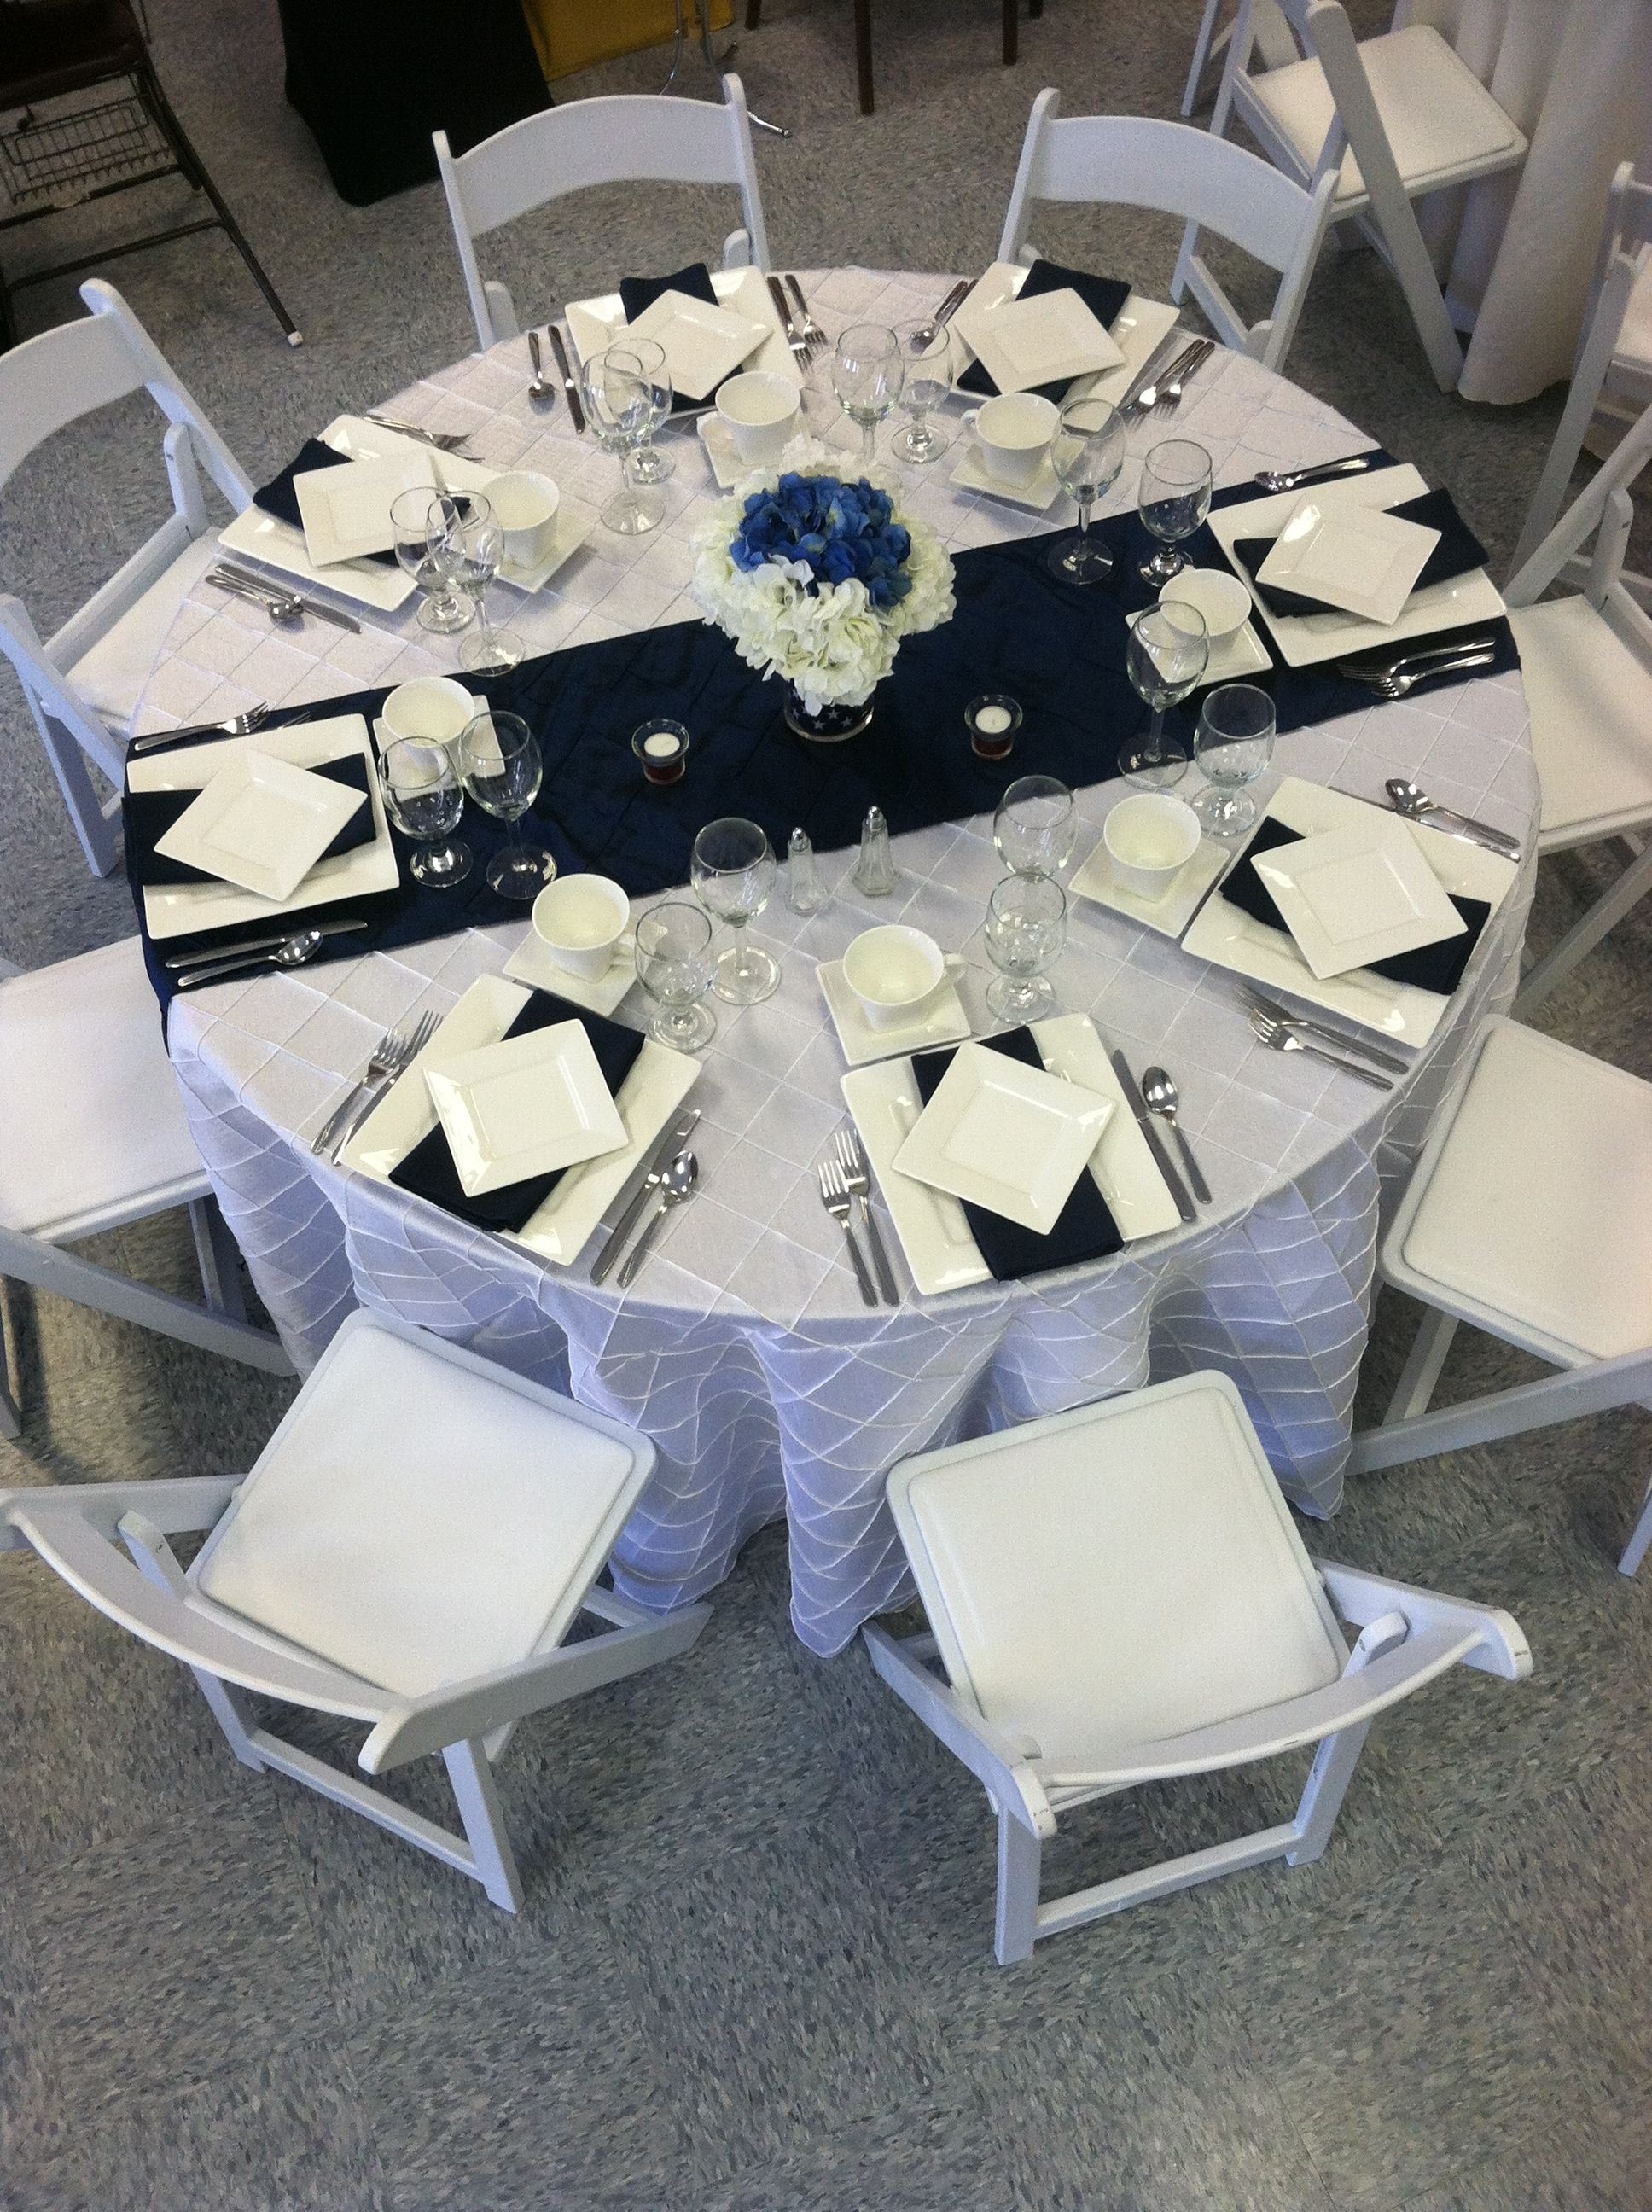 Patriotic Themed Table Setting White Pintuck Cloth With Navy Blue Pintuck Runner Patri Blue Table Settings White Wedding Table Setting White Table Settings